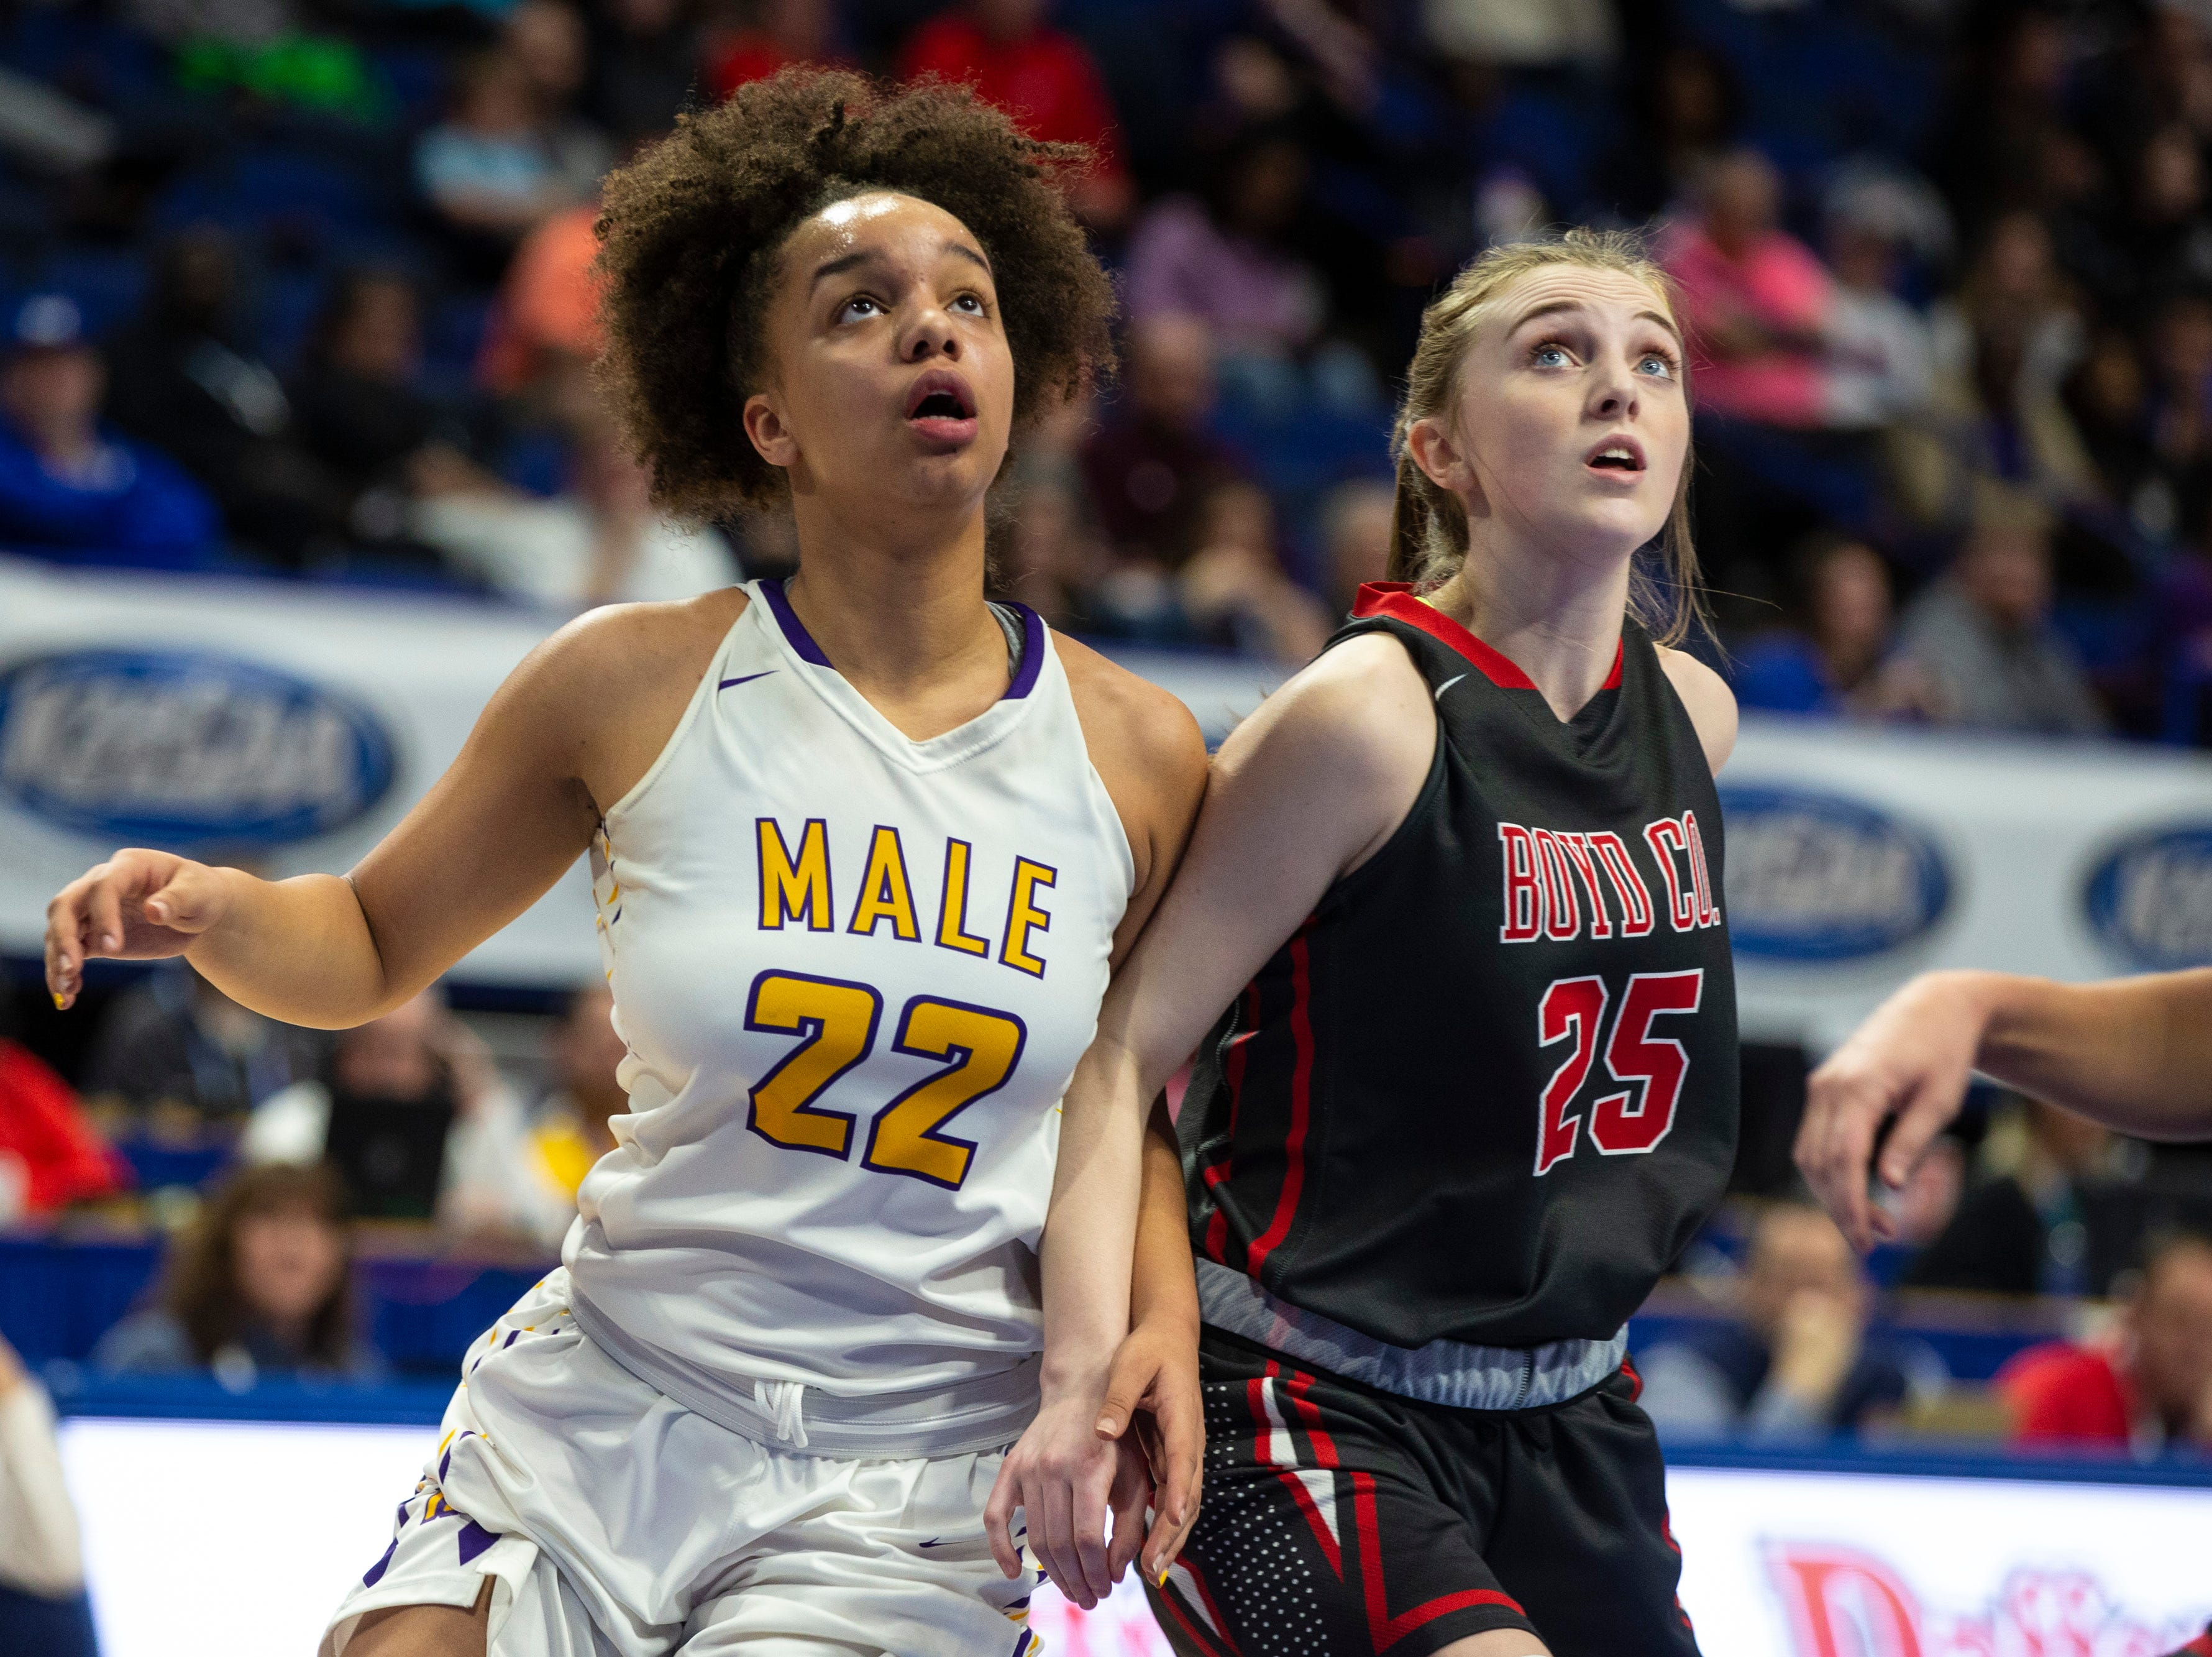 Male's Alana Stiverson, left, looks to block out Boyd County's Olivia Parsons in the first quarter as Boyd County took on Louisville Male in the KHSAA state basketball tournament in Rupp Arena. Male eliminated Boyd County 74-56. March 14, 2019